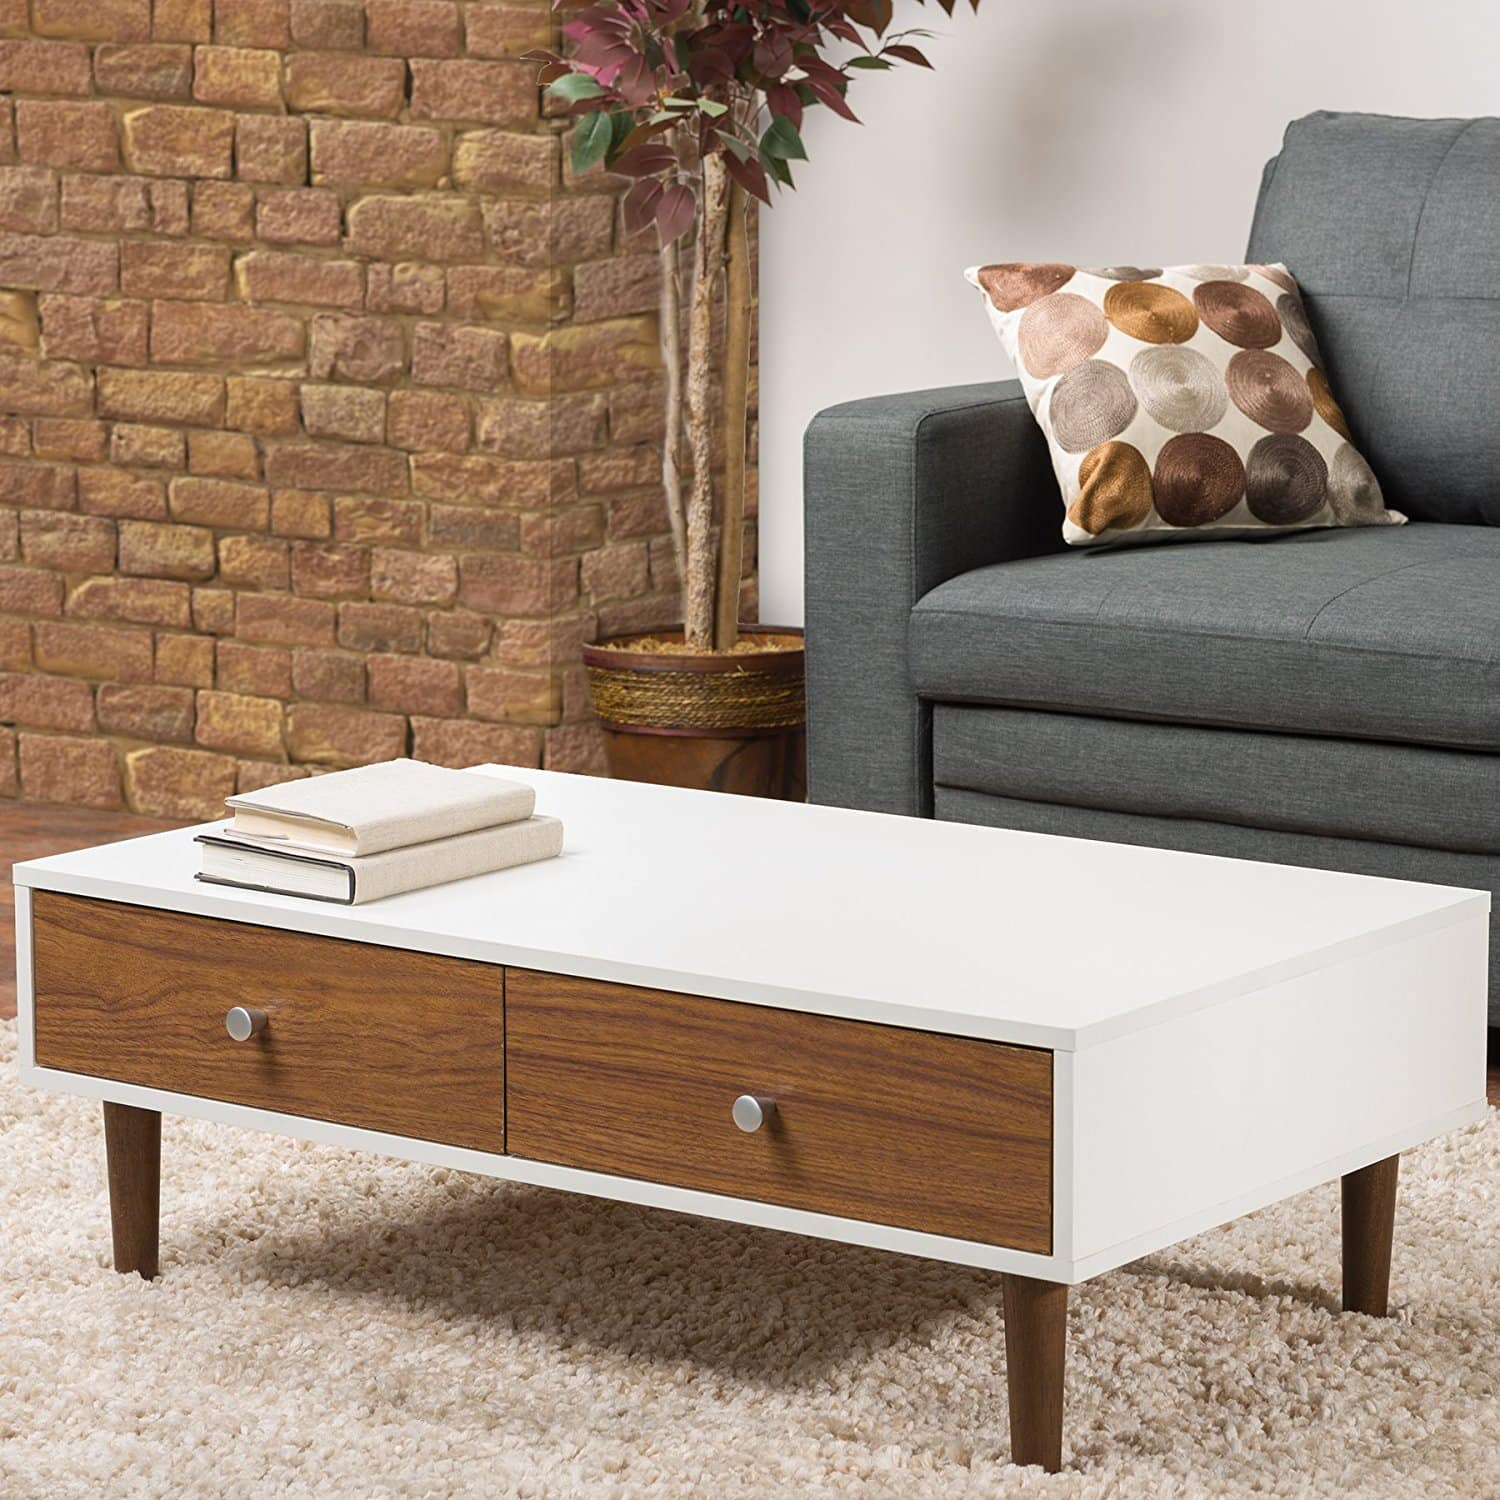 Cheap coffee tables under 100 that work for every style for Coffee table under 50